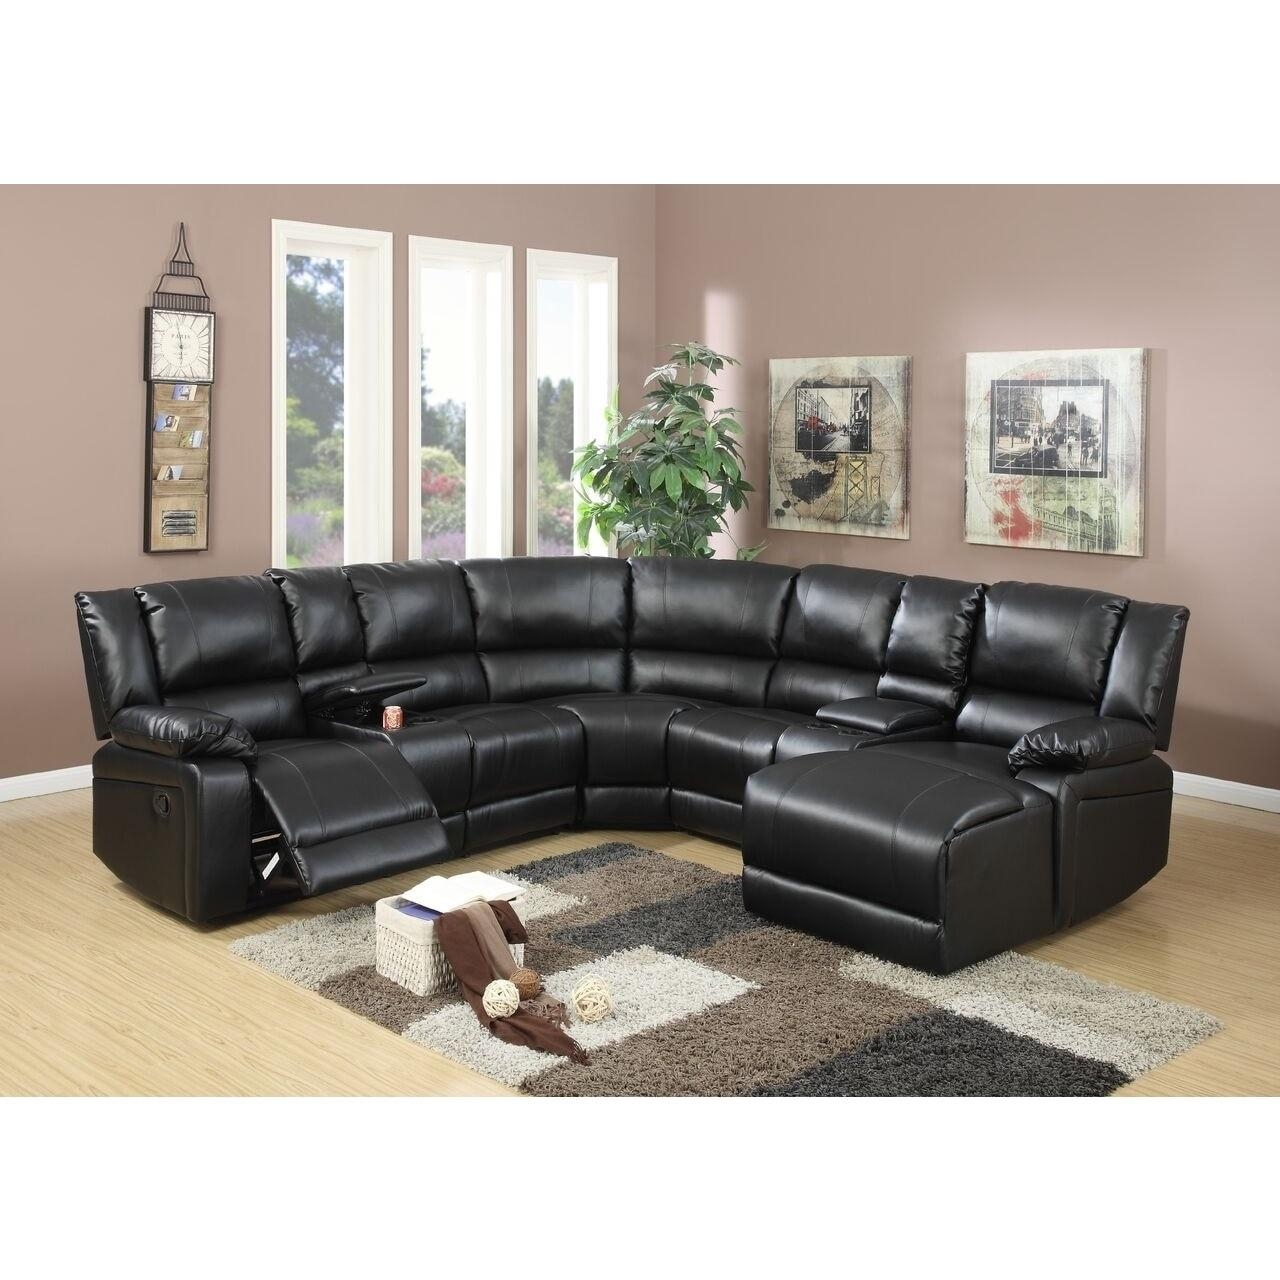 Leather Motion Sectional Sofas | Sofa Menzilperde With Regard To Leather Motion Sectional Sofa (View 8 of 20)